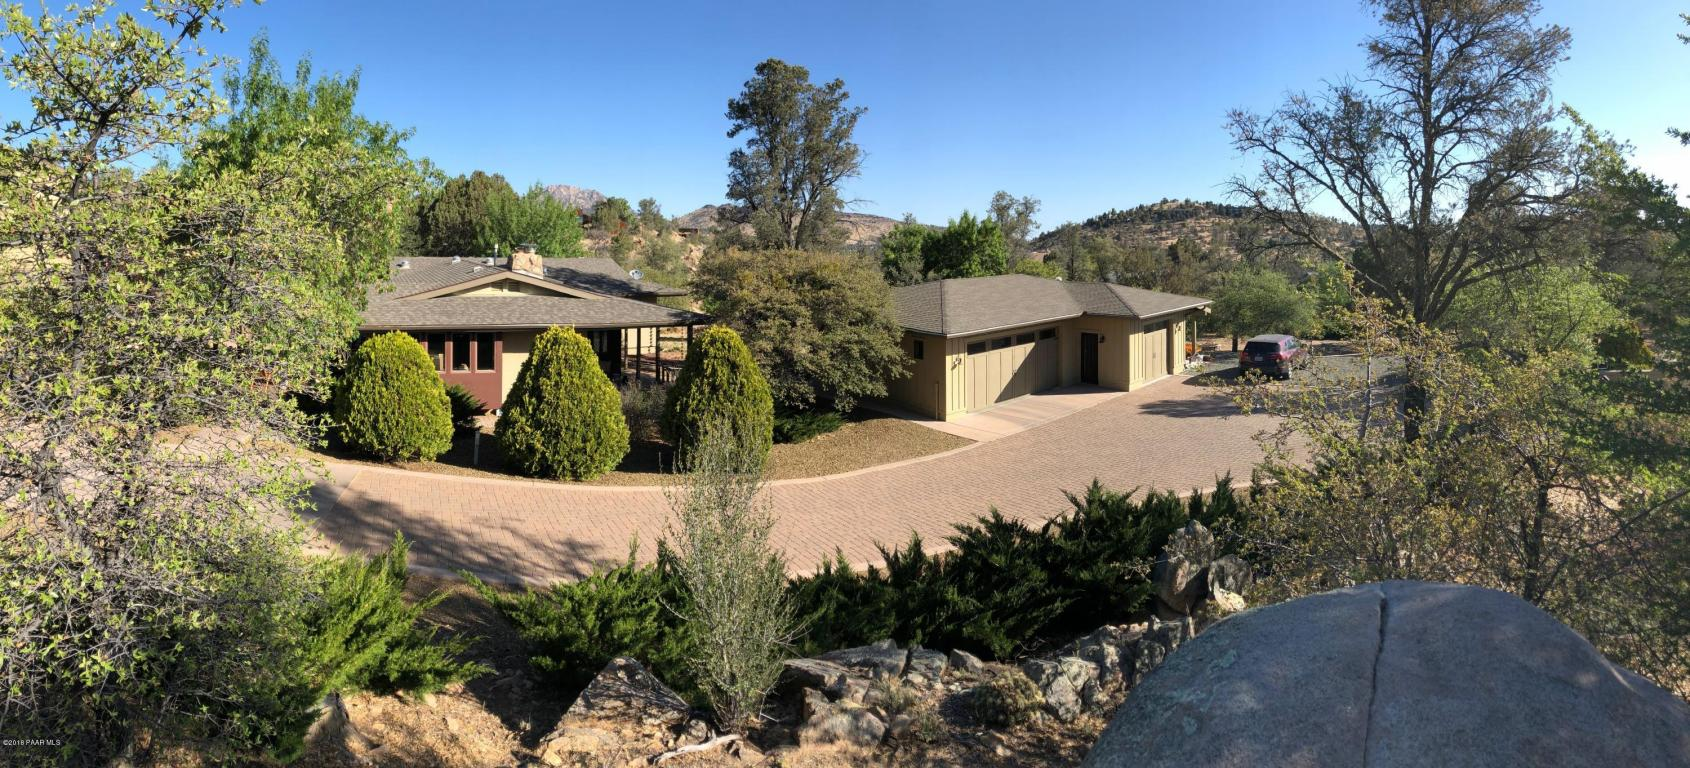 Photo for 1876 Peaceful Mesa Drive, Prescott, AZ 86305 (MLS # 1012069)